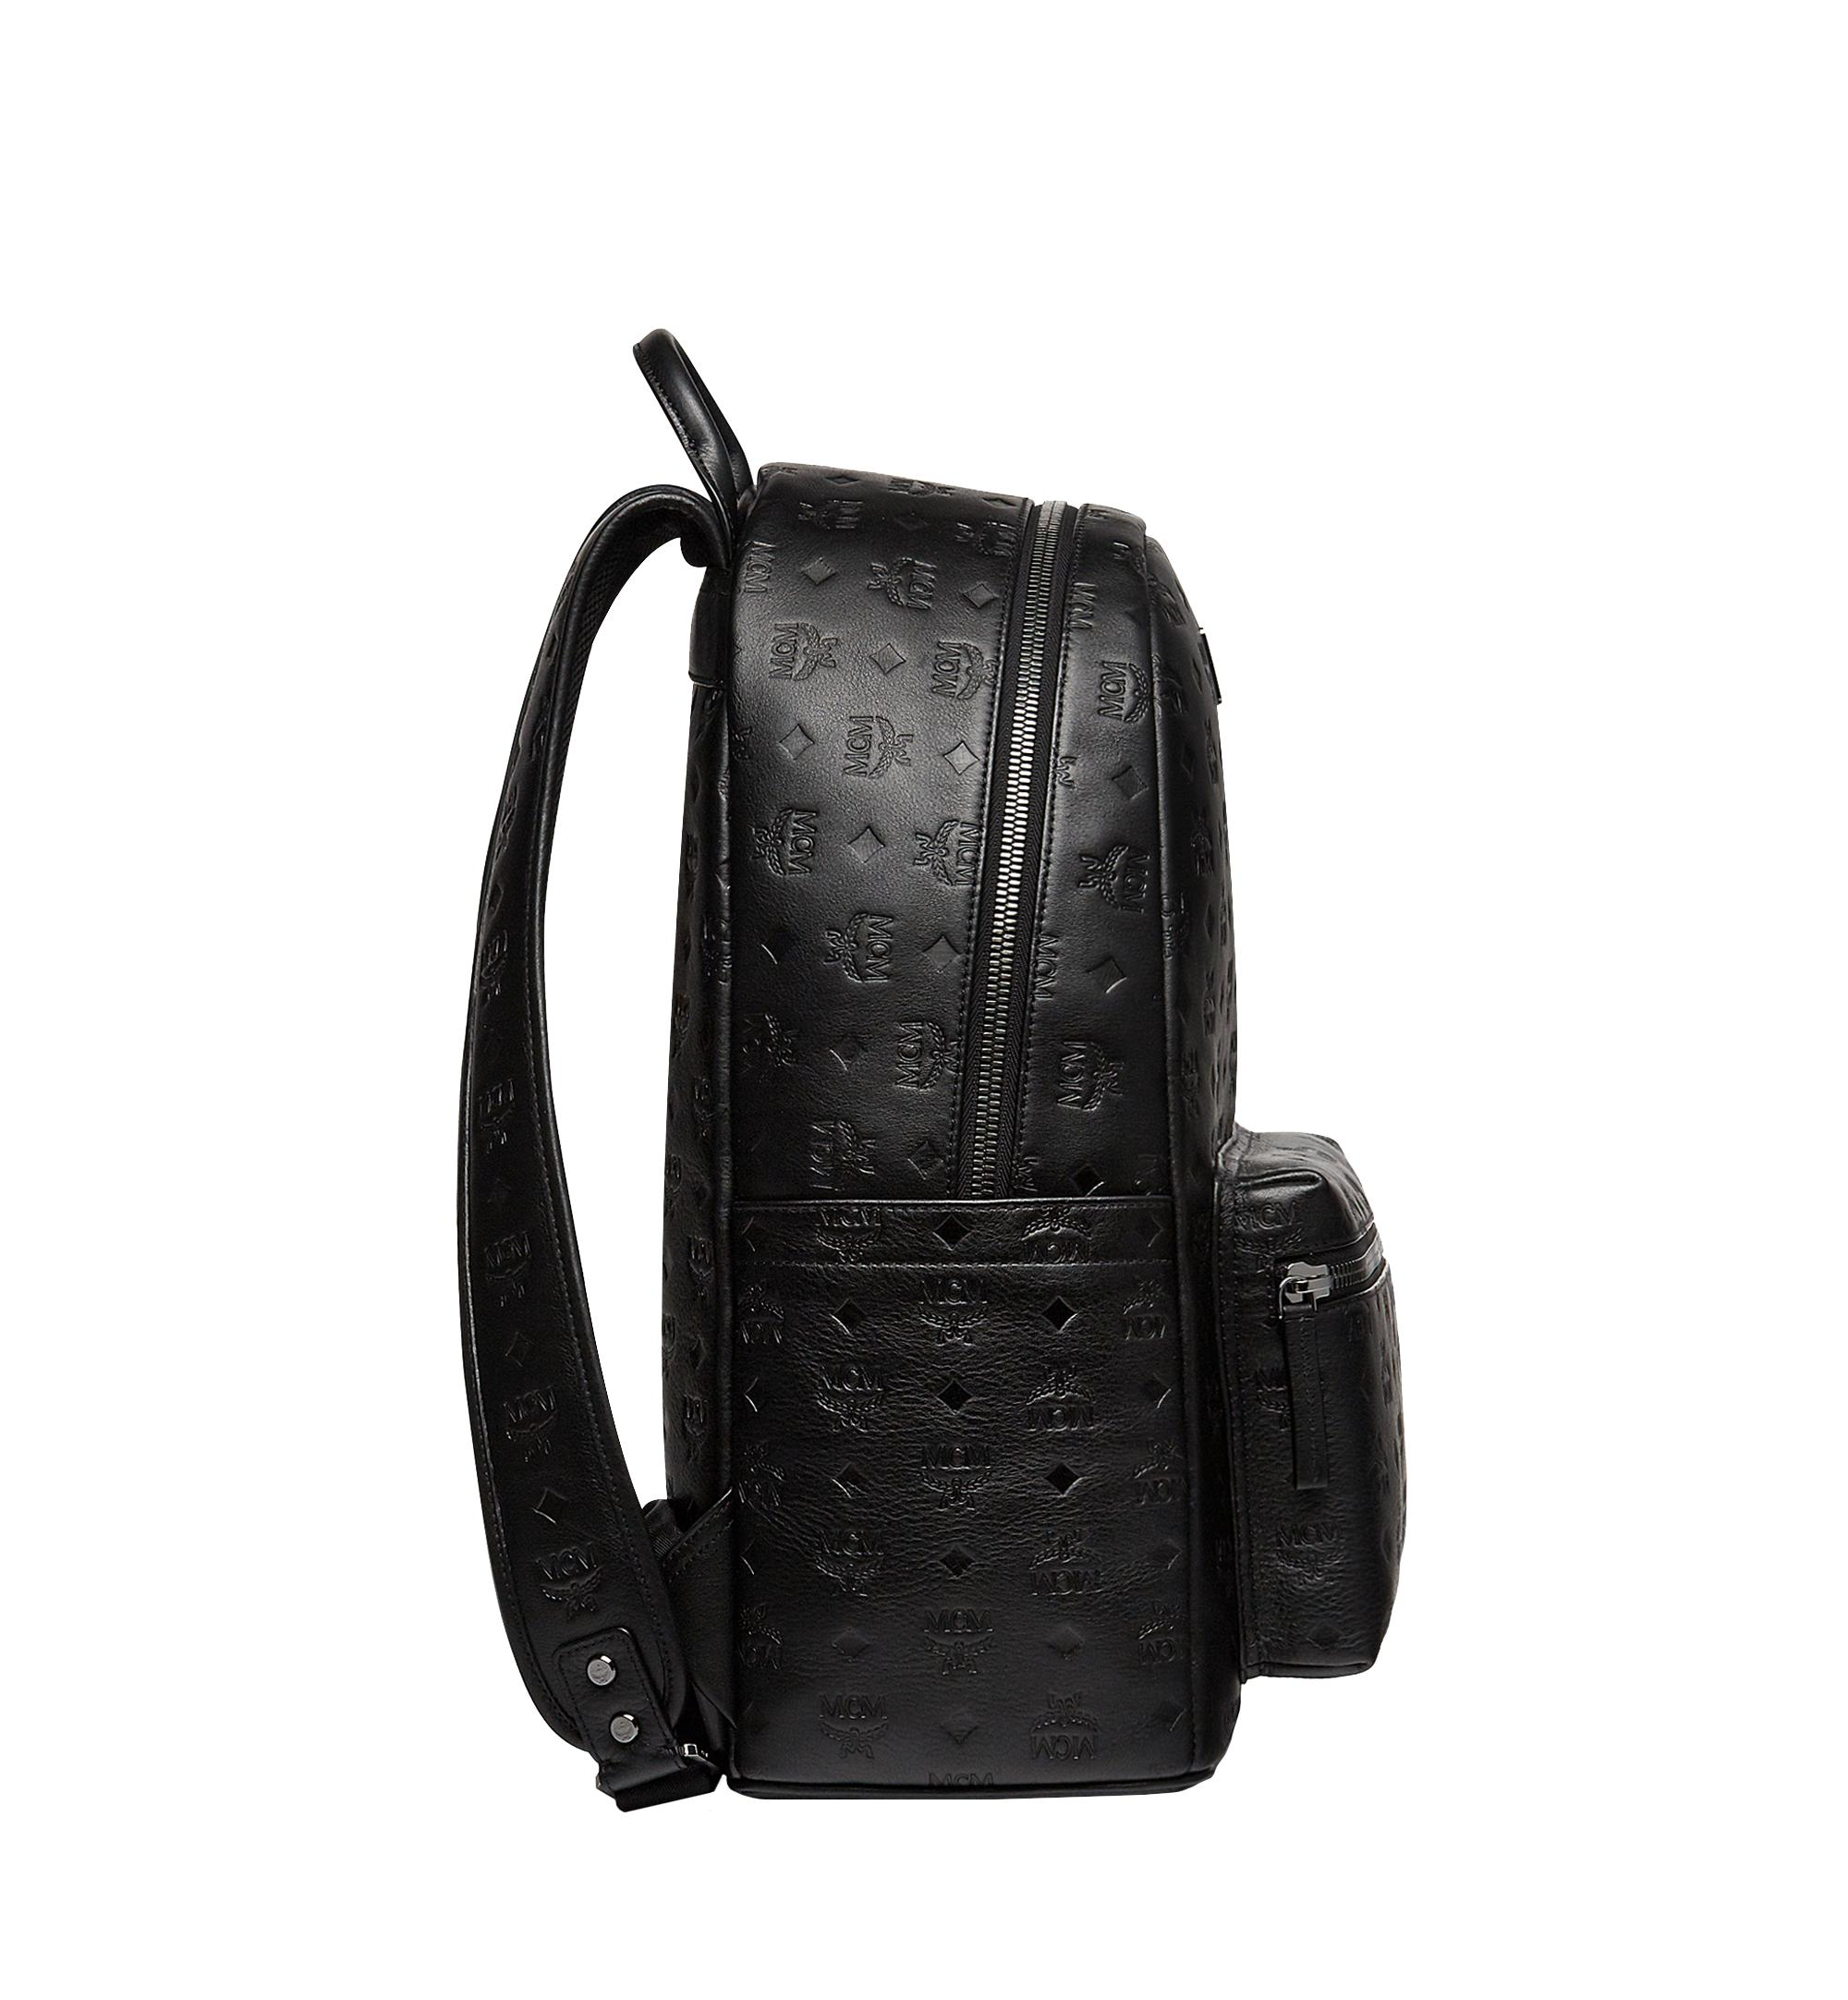 feda921ba320 MCM - Black Stark Backpack In Monogram Leather for Men - Lyst. View  fullscreen